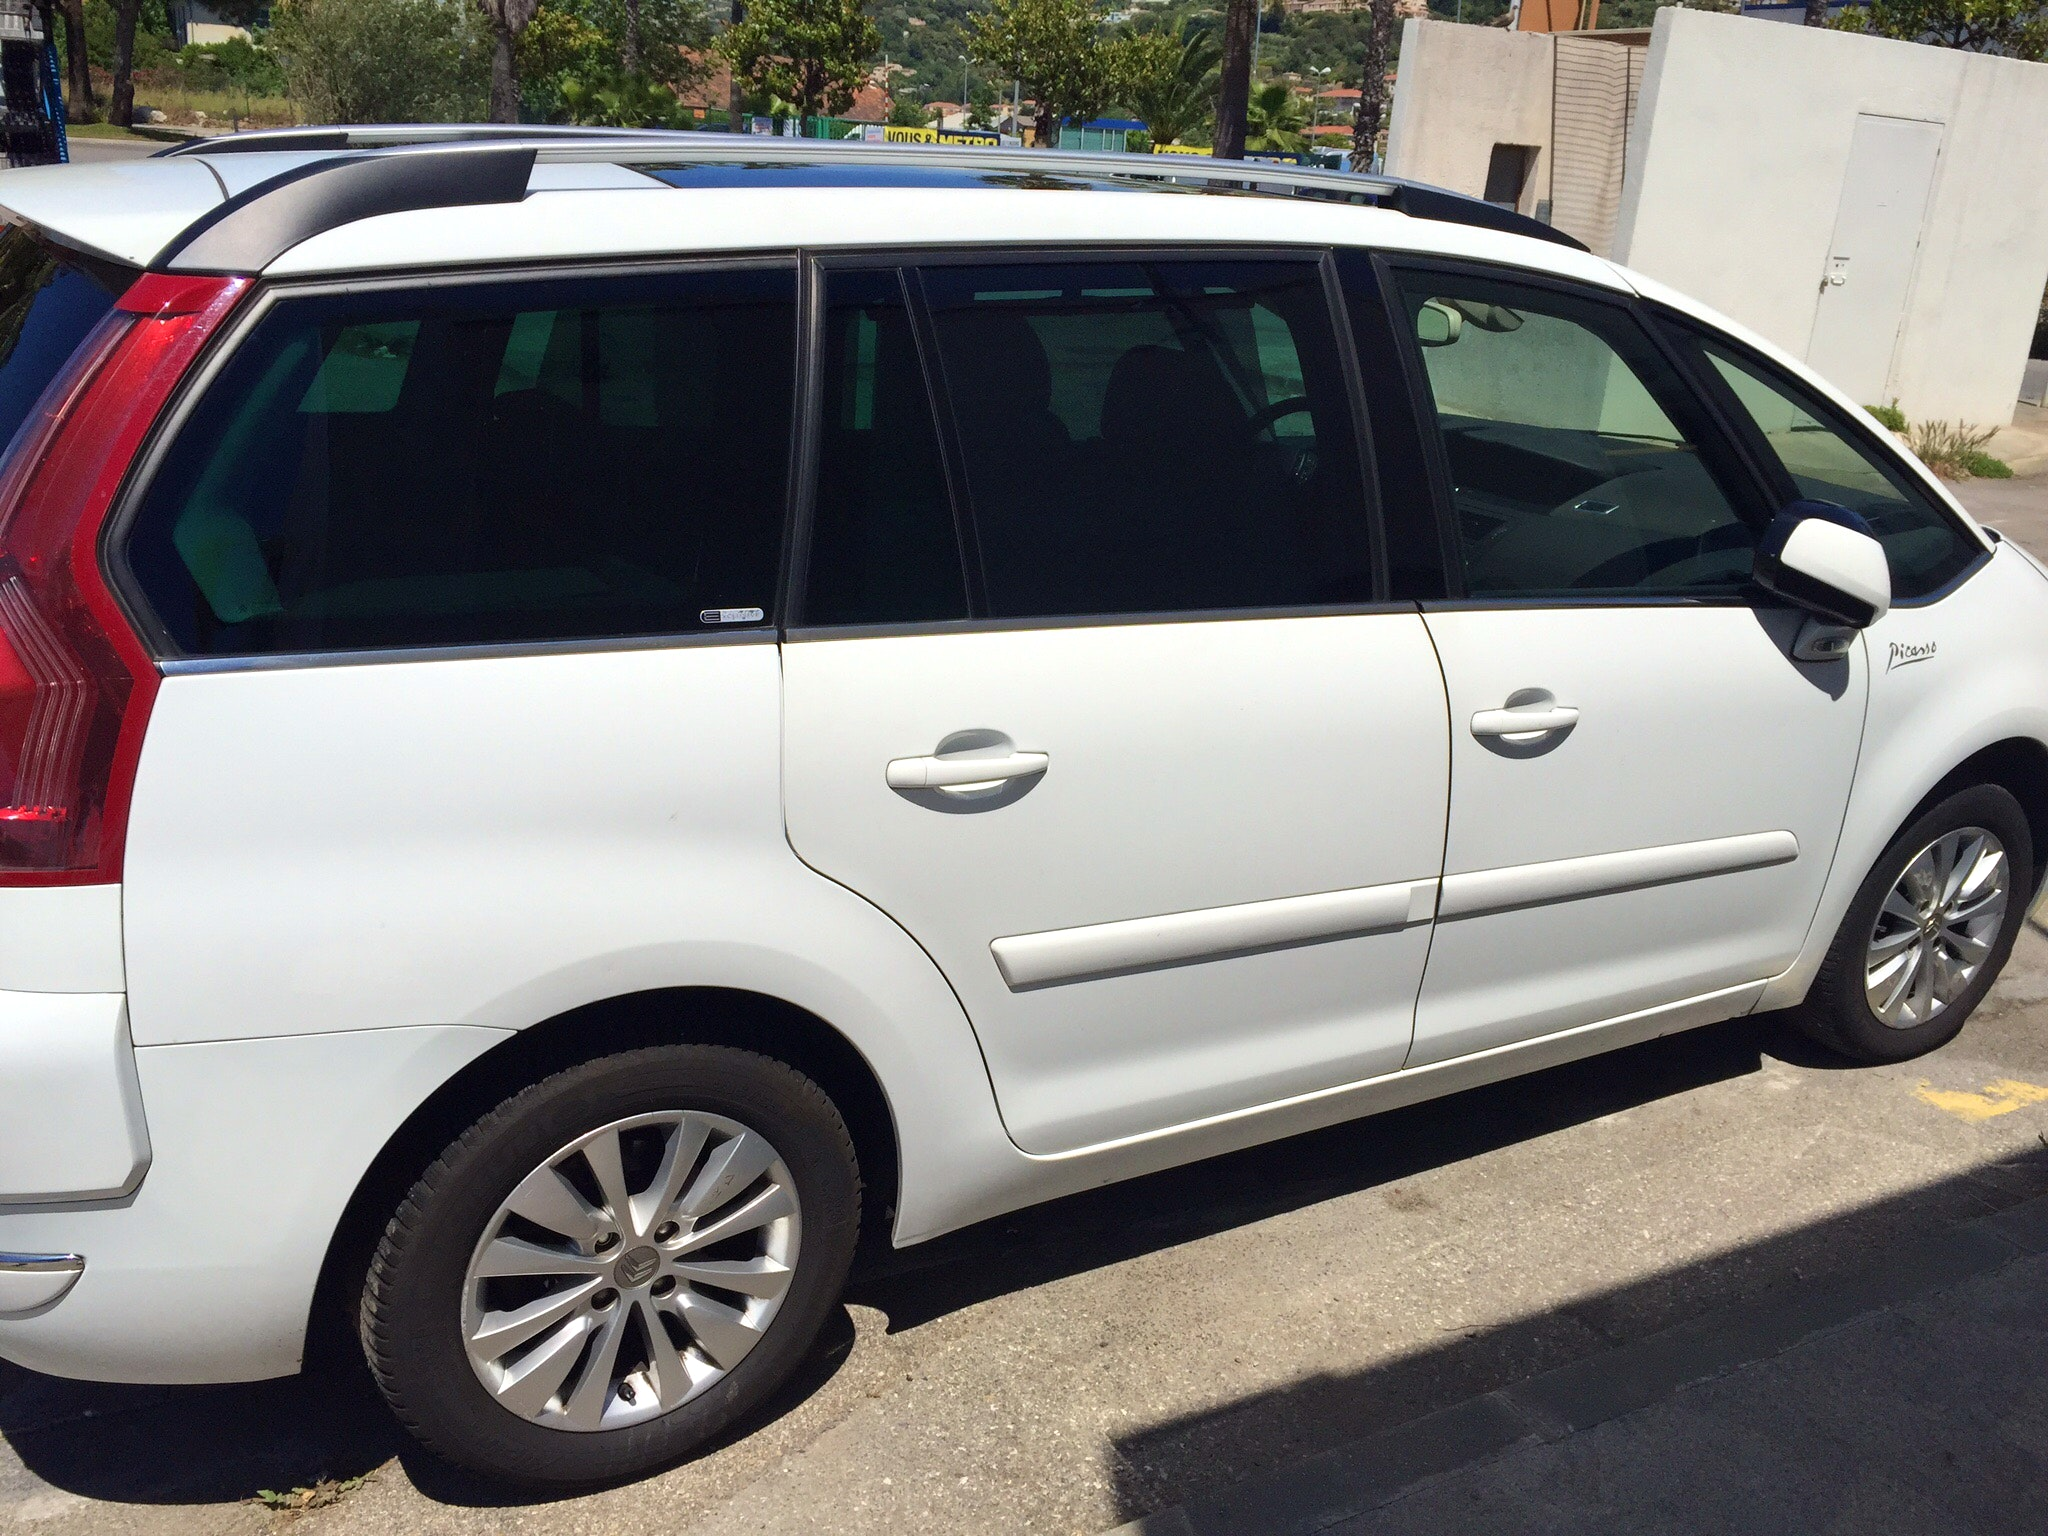 Citroën Grand C4 Picasso Visiospace 7places, 2009, Diesel, automatique, 7 places - Familiale Nice (06)